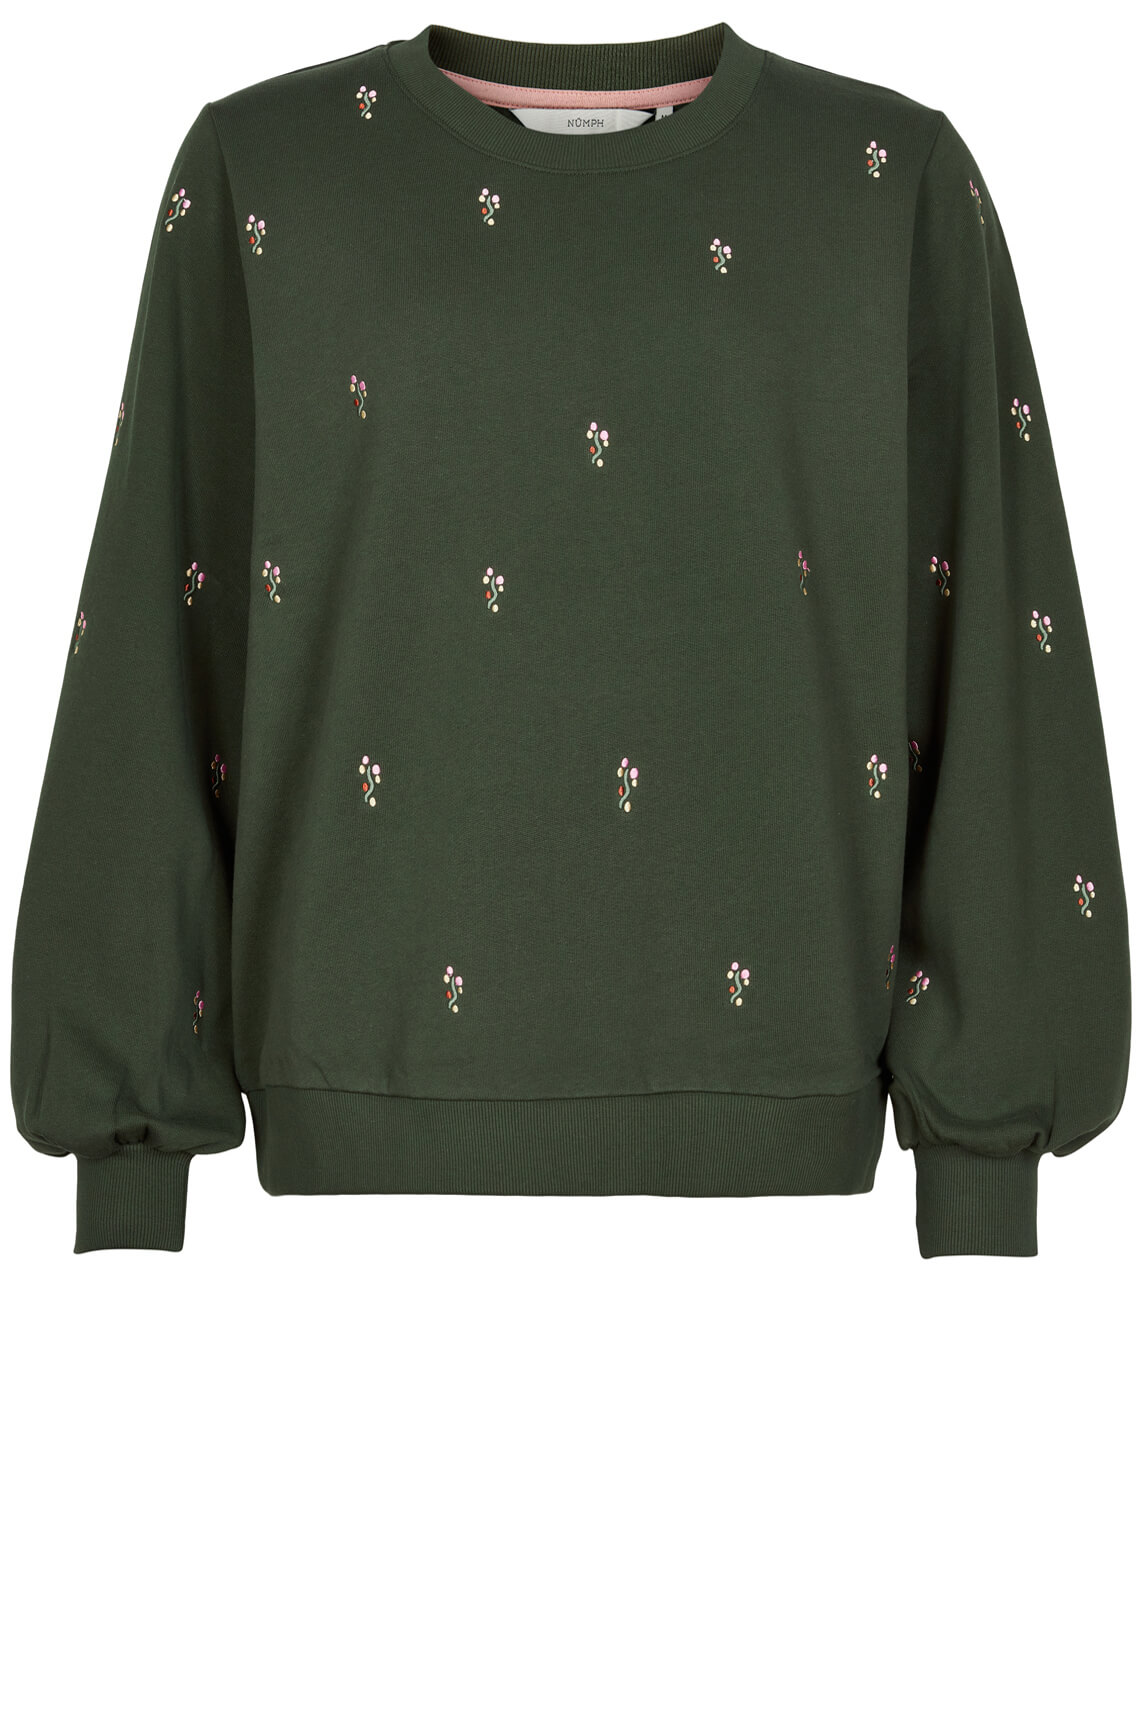 Numph Dames Brittany sweater groen